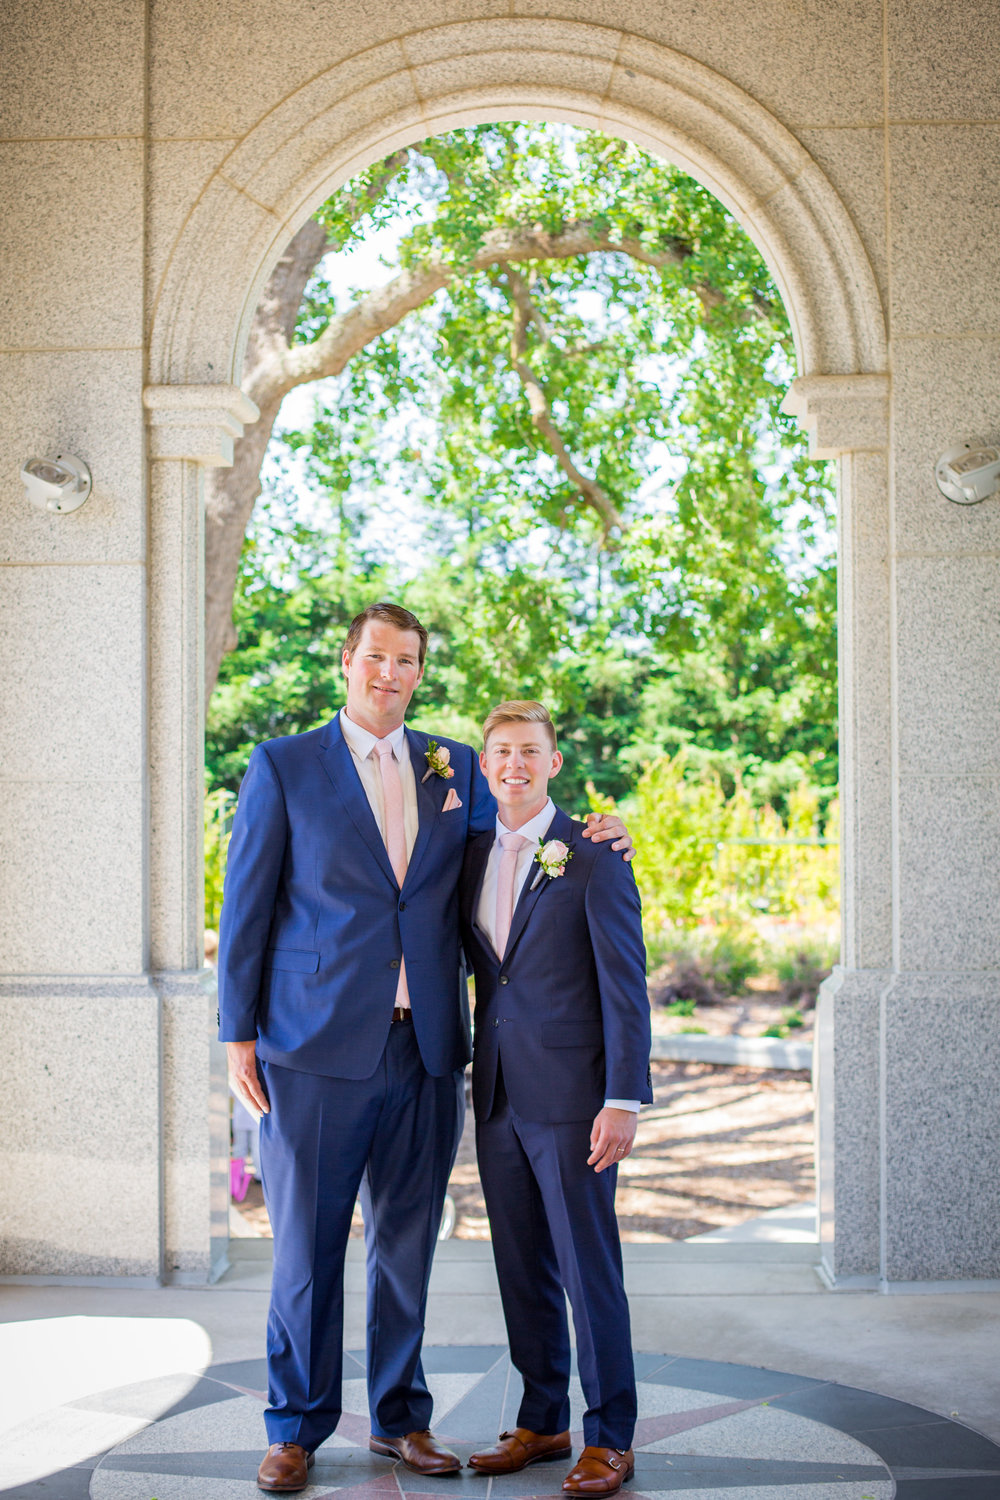 Jena & John - Sacramento Wedding Photographer - Ashley Teasley Photography-52.jpg